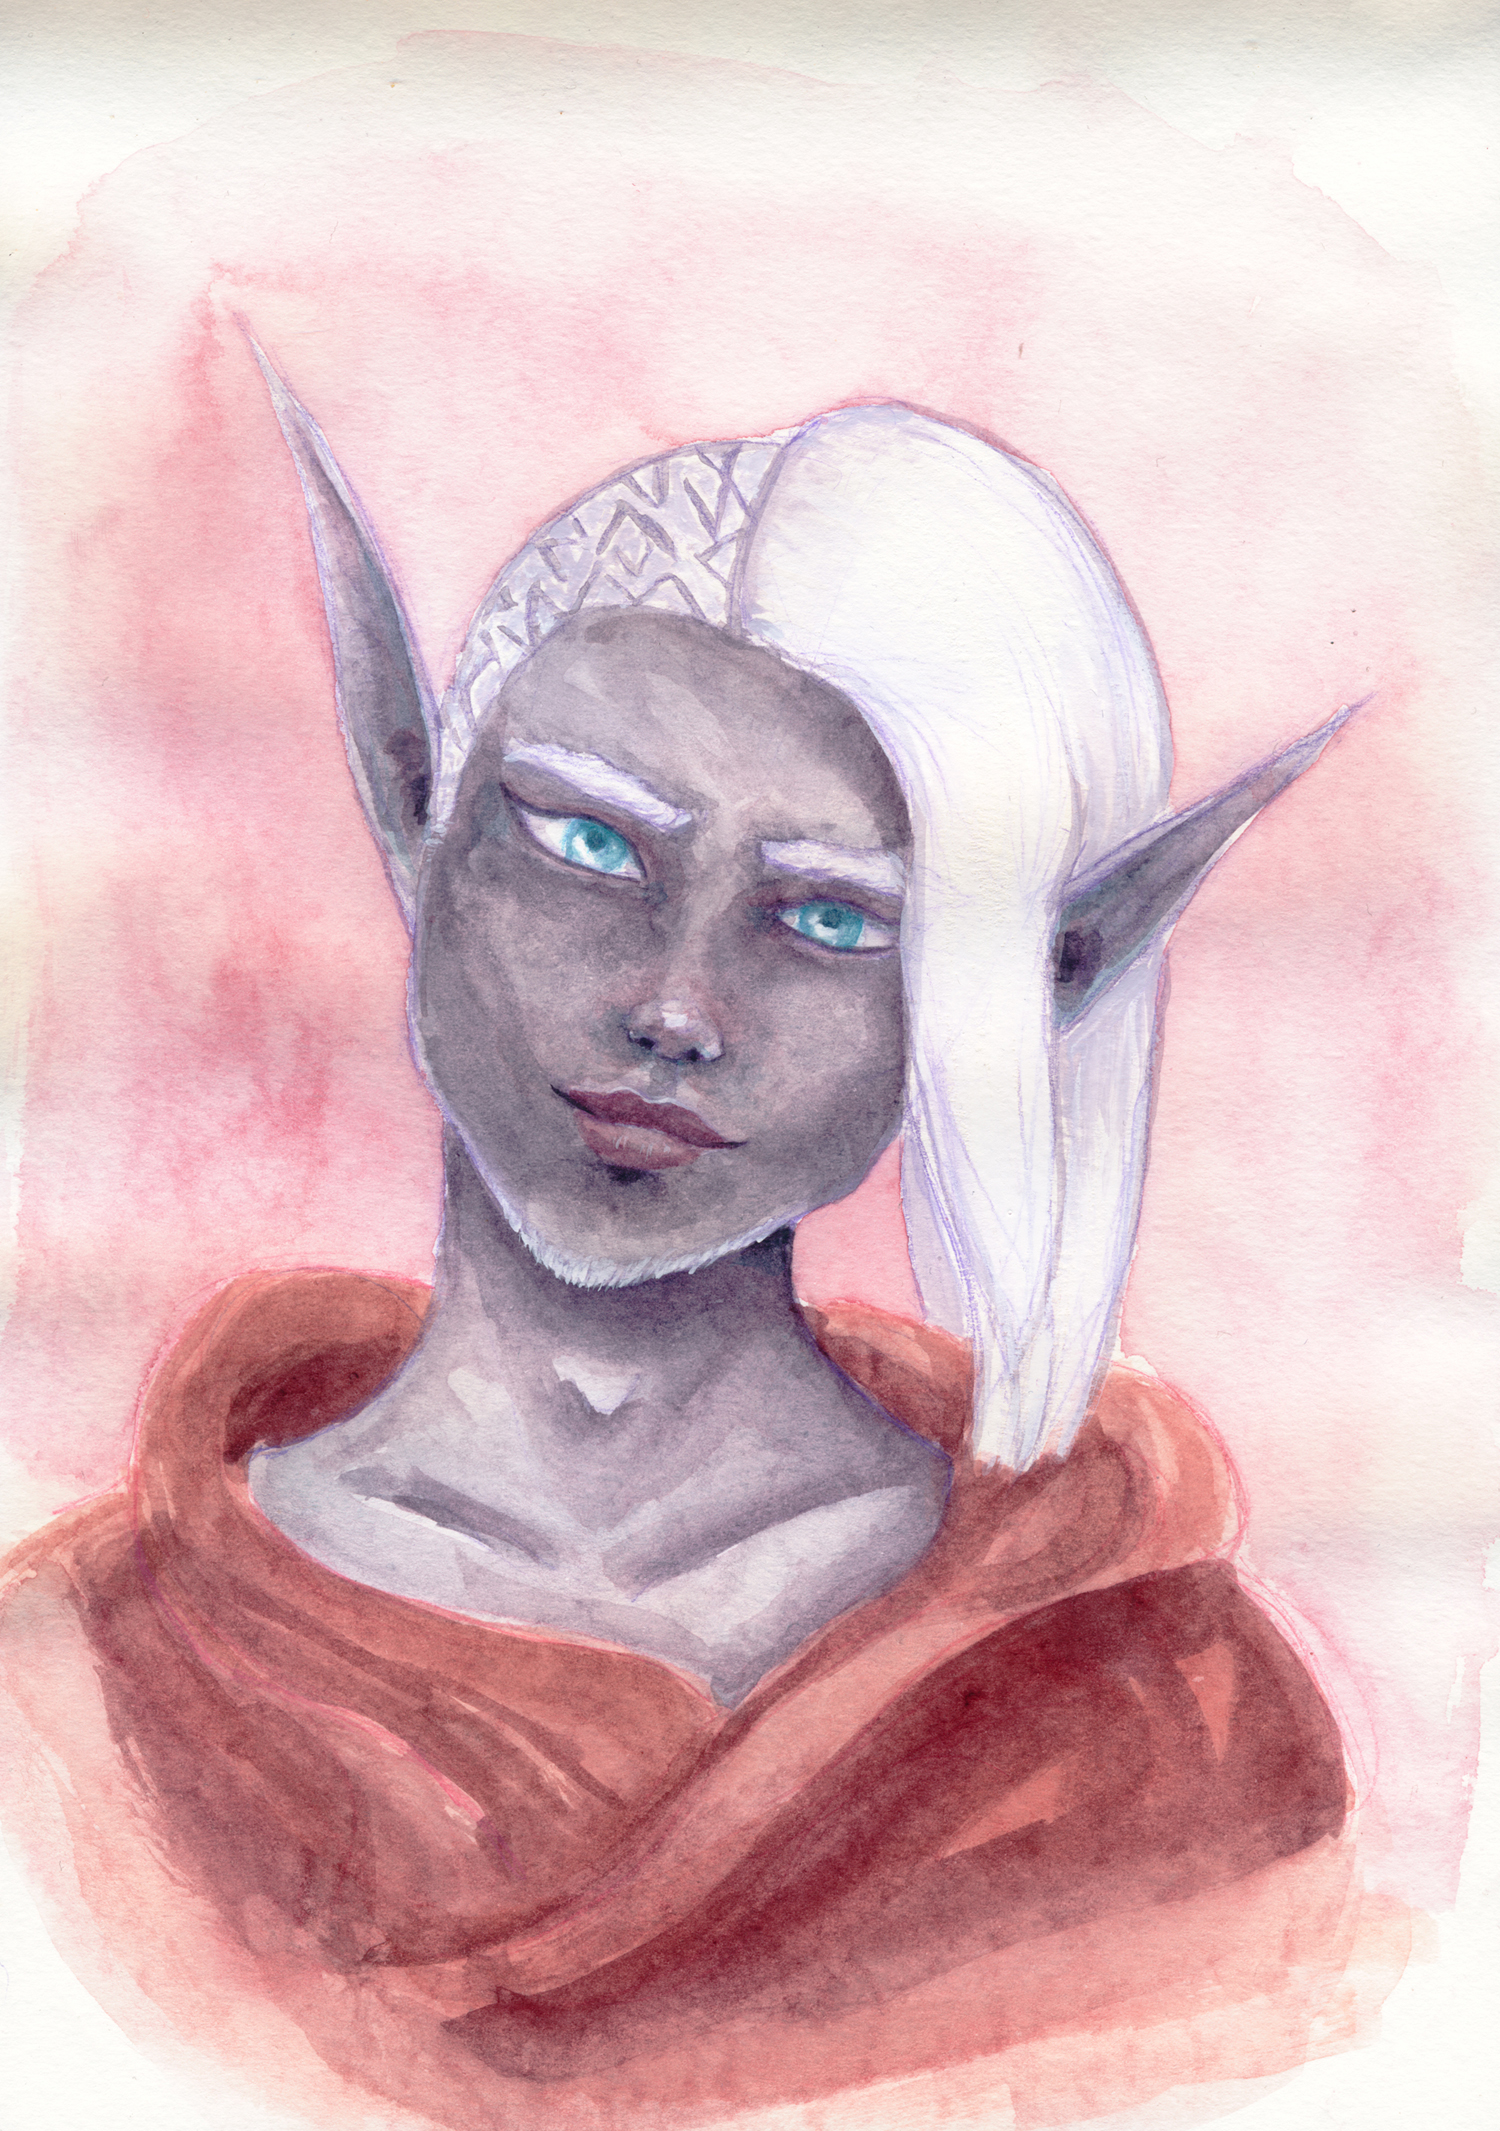 A watercolor portrait of a Drow Elven androgynous man. He has bright blue eyes and a cheeky look.